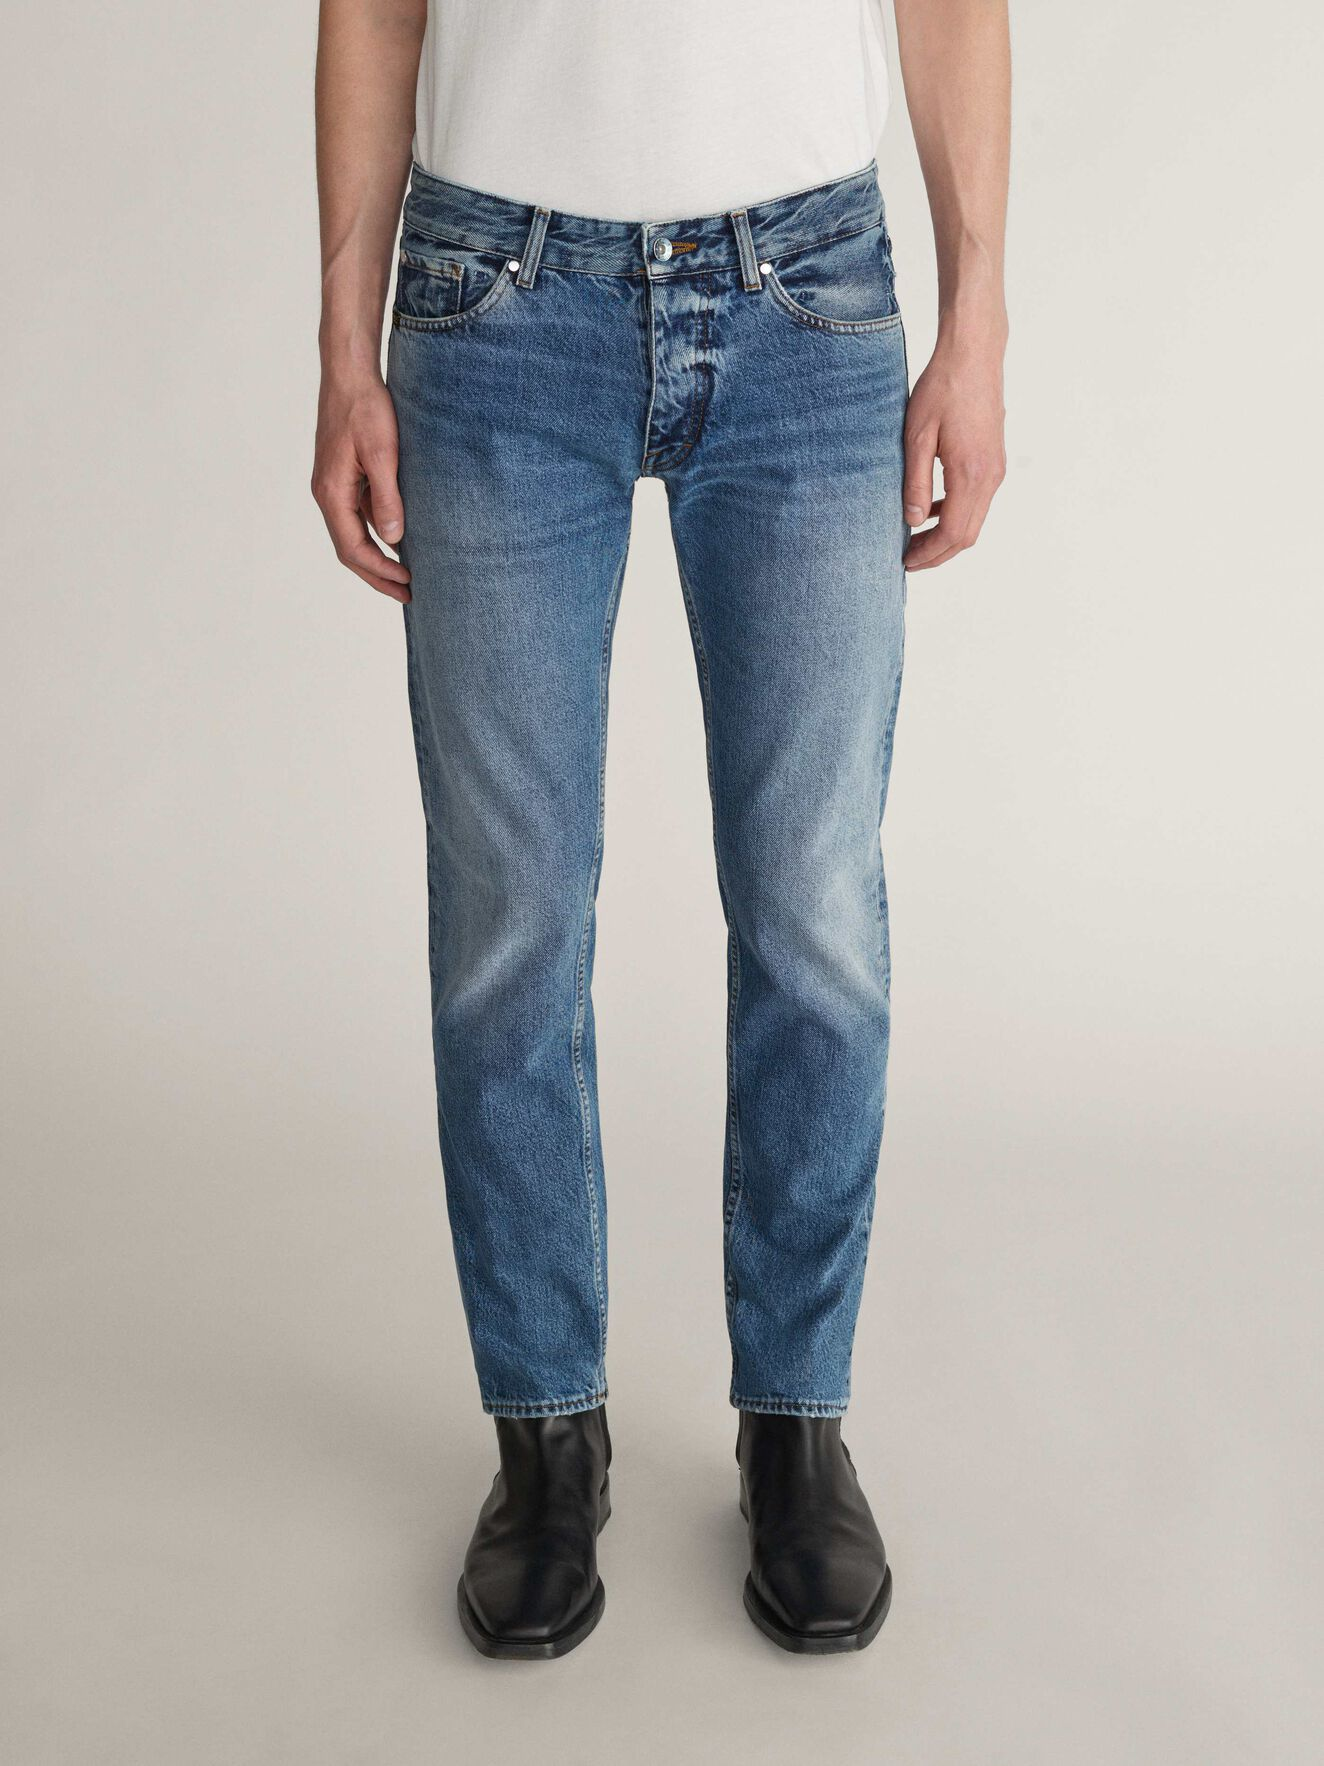 Alex Jeans in Medium Blue from Tiger of Sweden